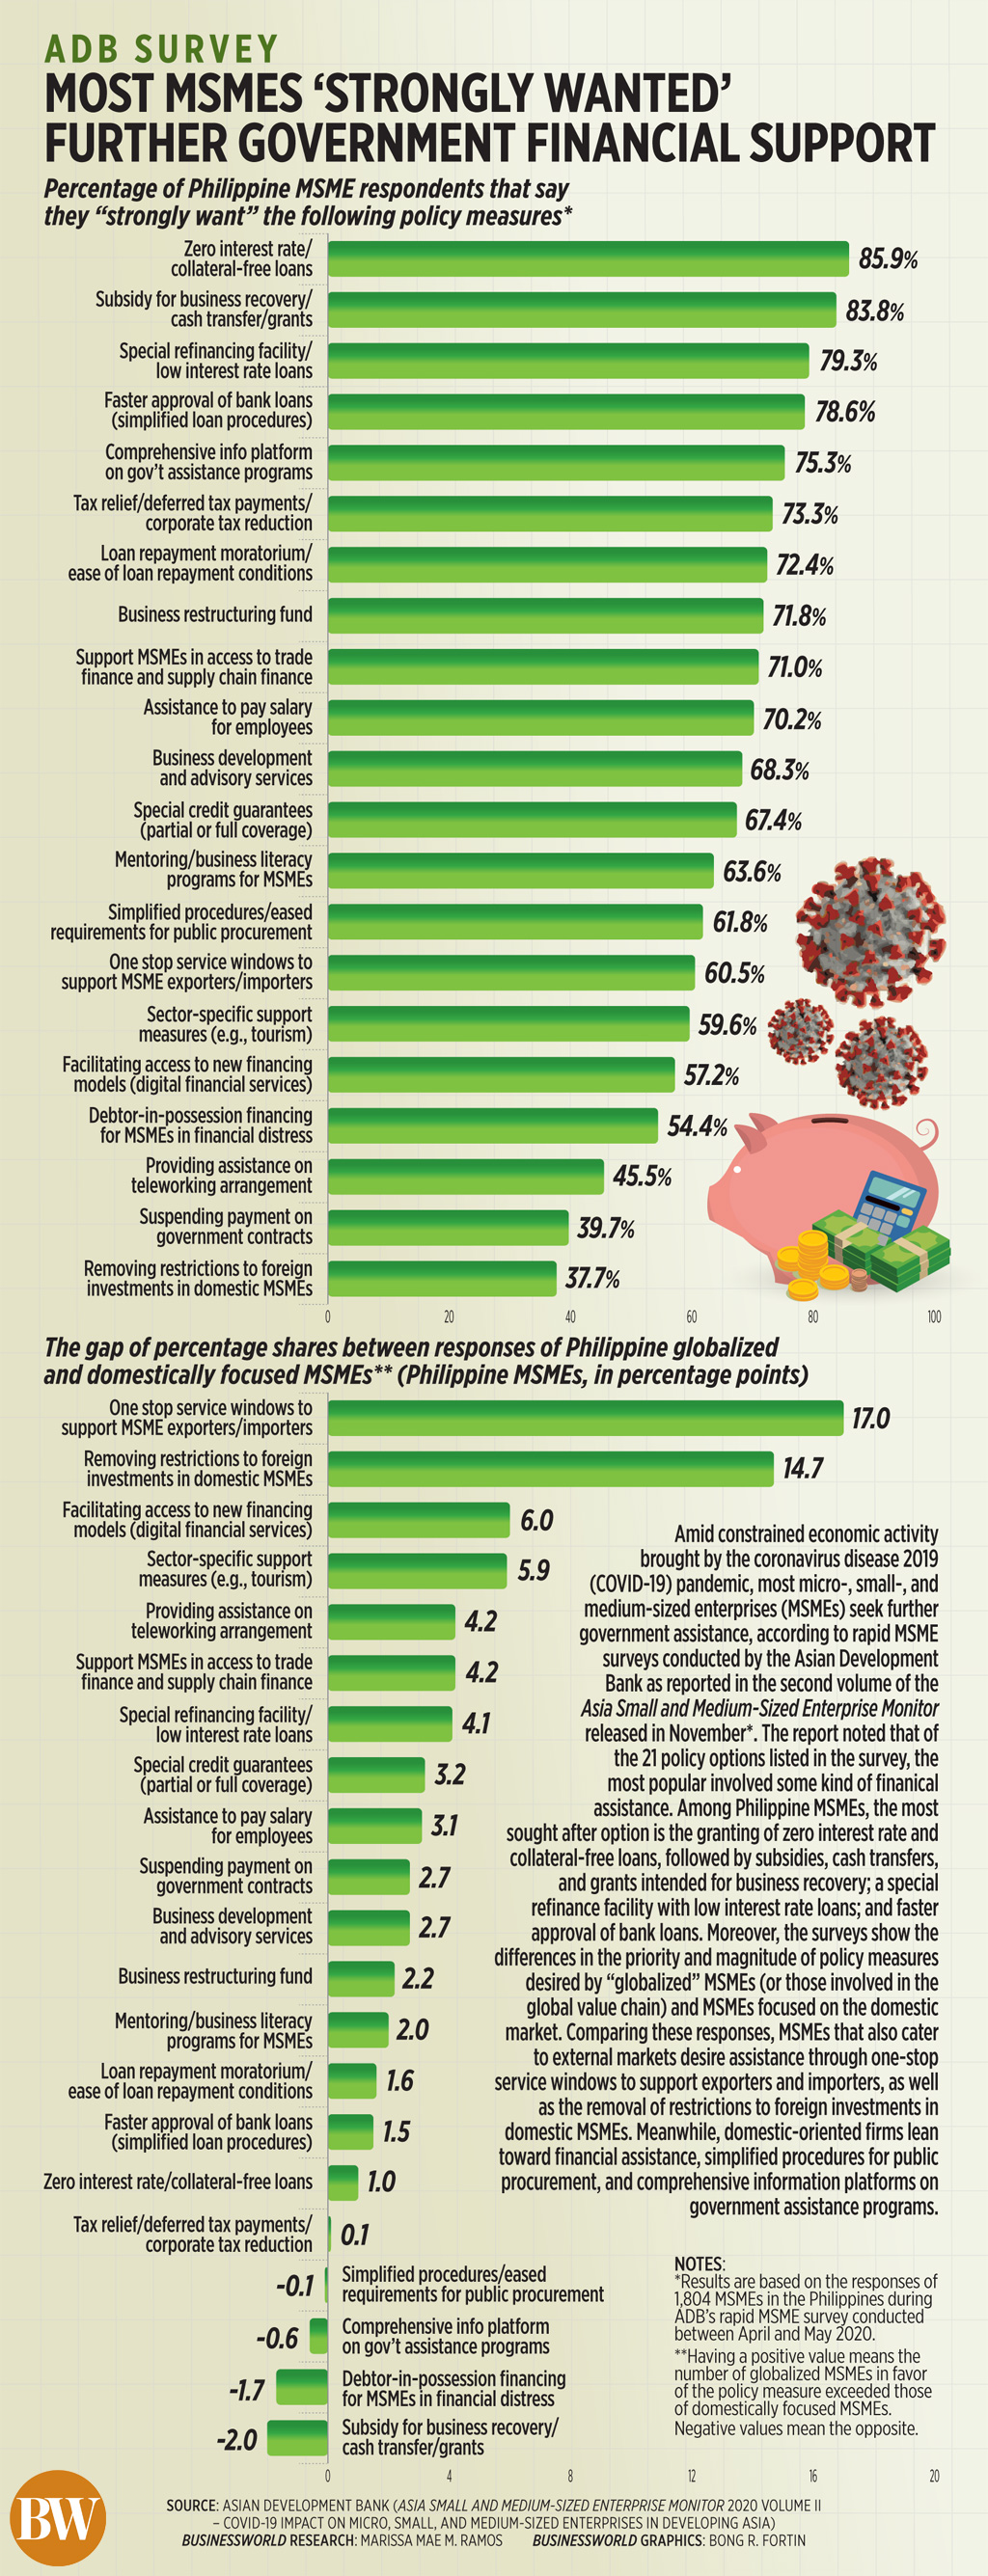 ADB survey: Most MSMEs 'strongly wanted' further government financial support